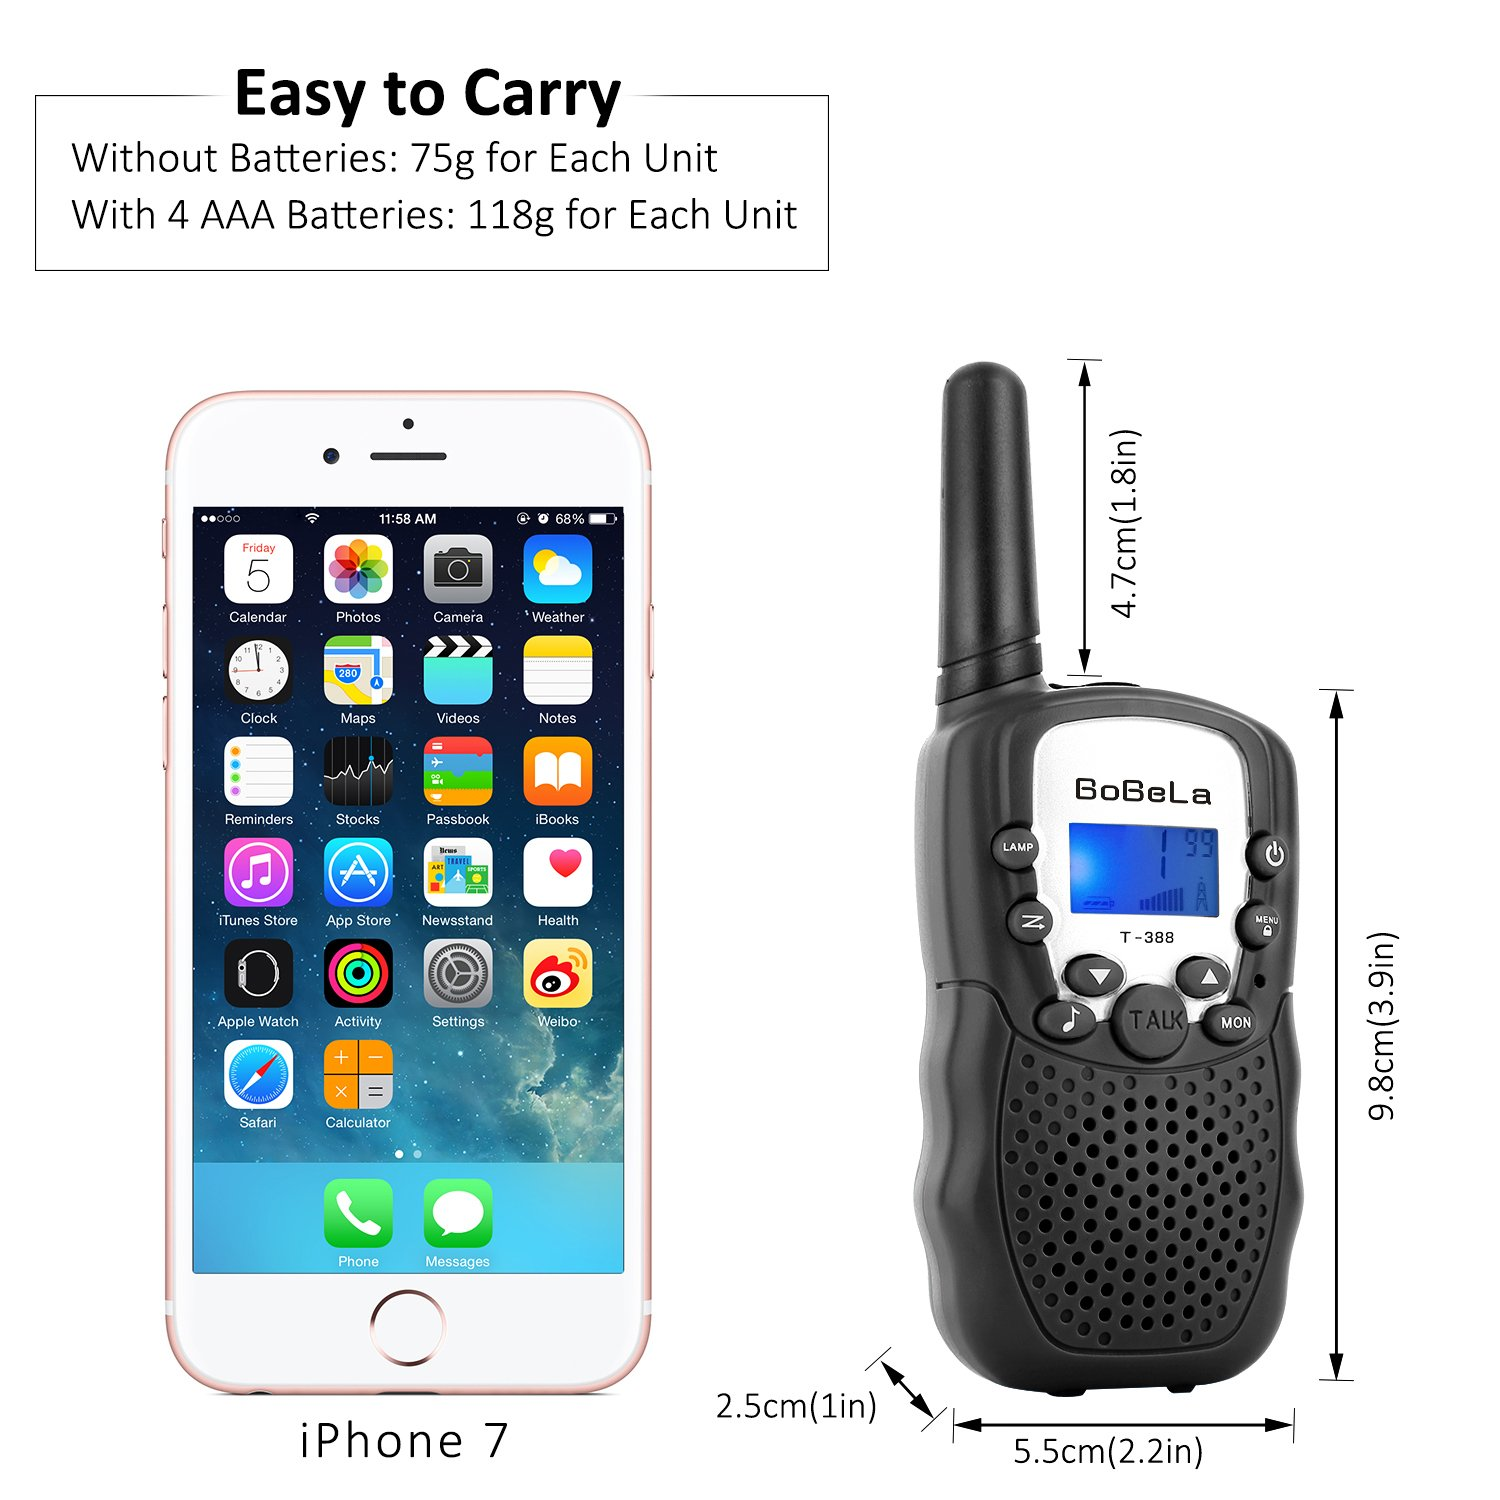 Bobela Walkie-Talkies 4 Pack for Adults Travel - T-388 Black Handheld Walky-Talky with Flashlight for Parents Kids - 2-Way-Radio with Mic PTT Clip Long Range for Baby Teen Boy Girl Him Family as Gifts by Bobela (Image #4)